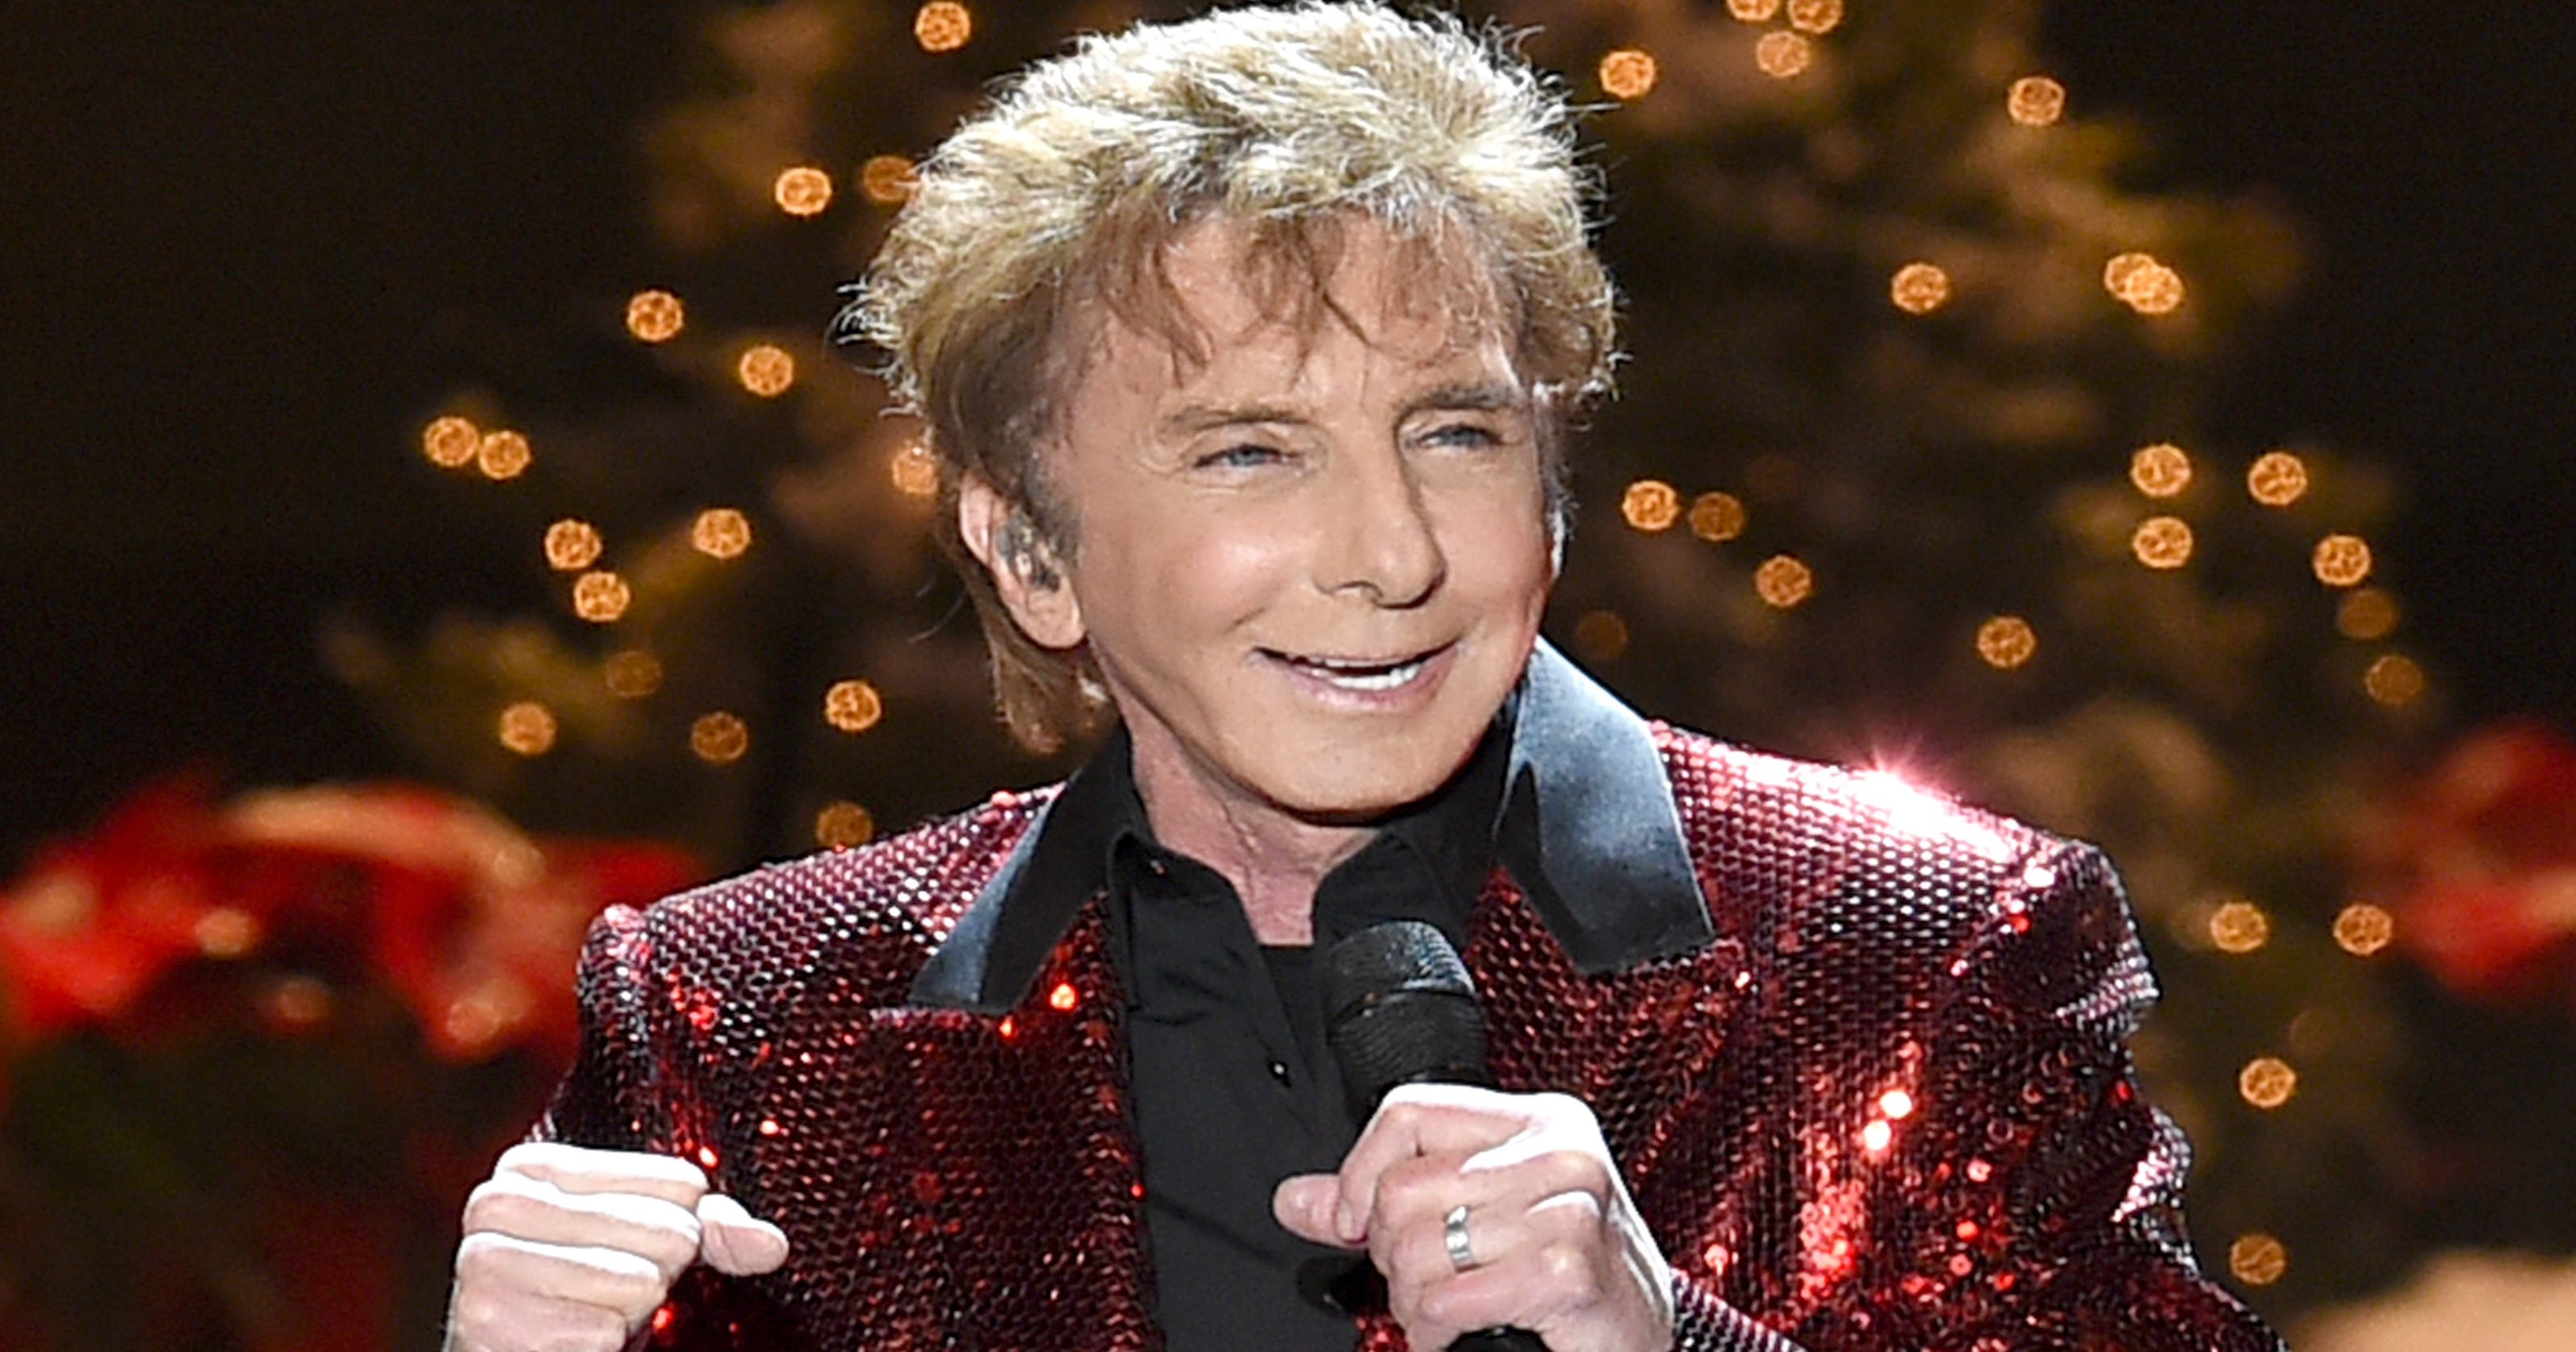 Barry Manilow is happy performing in Vegas, unsure of writing new book